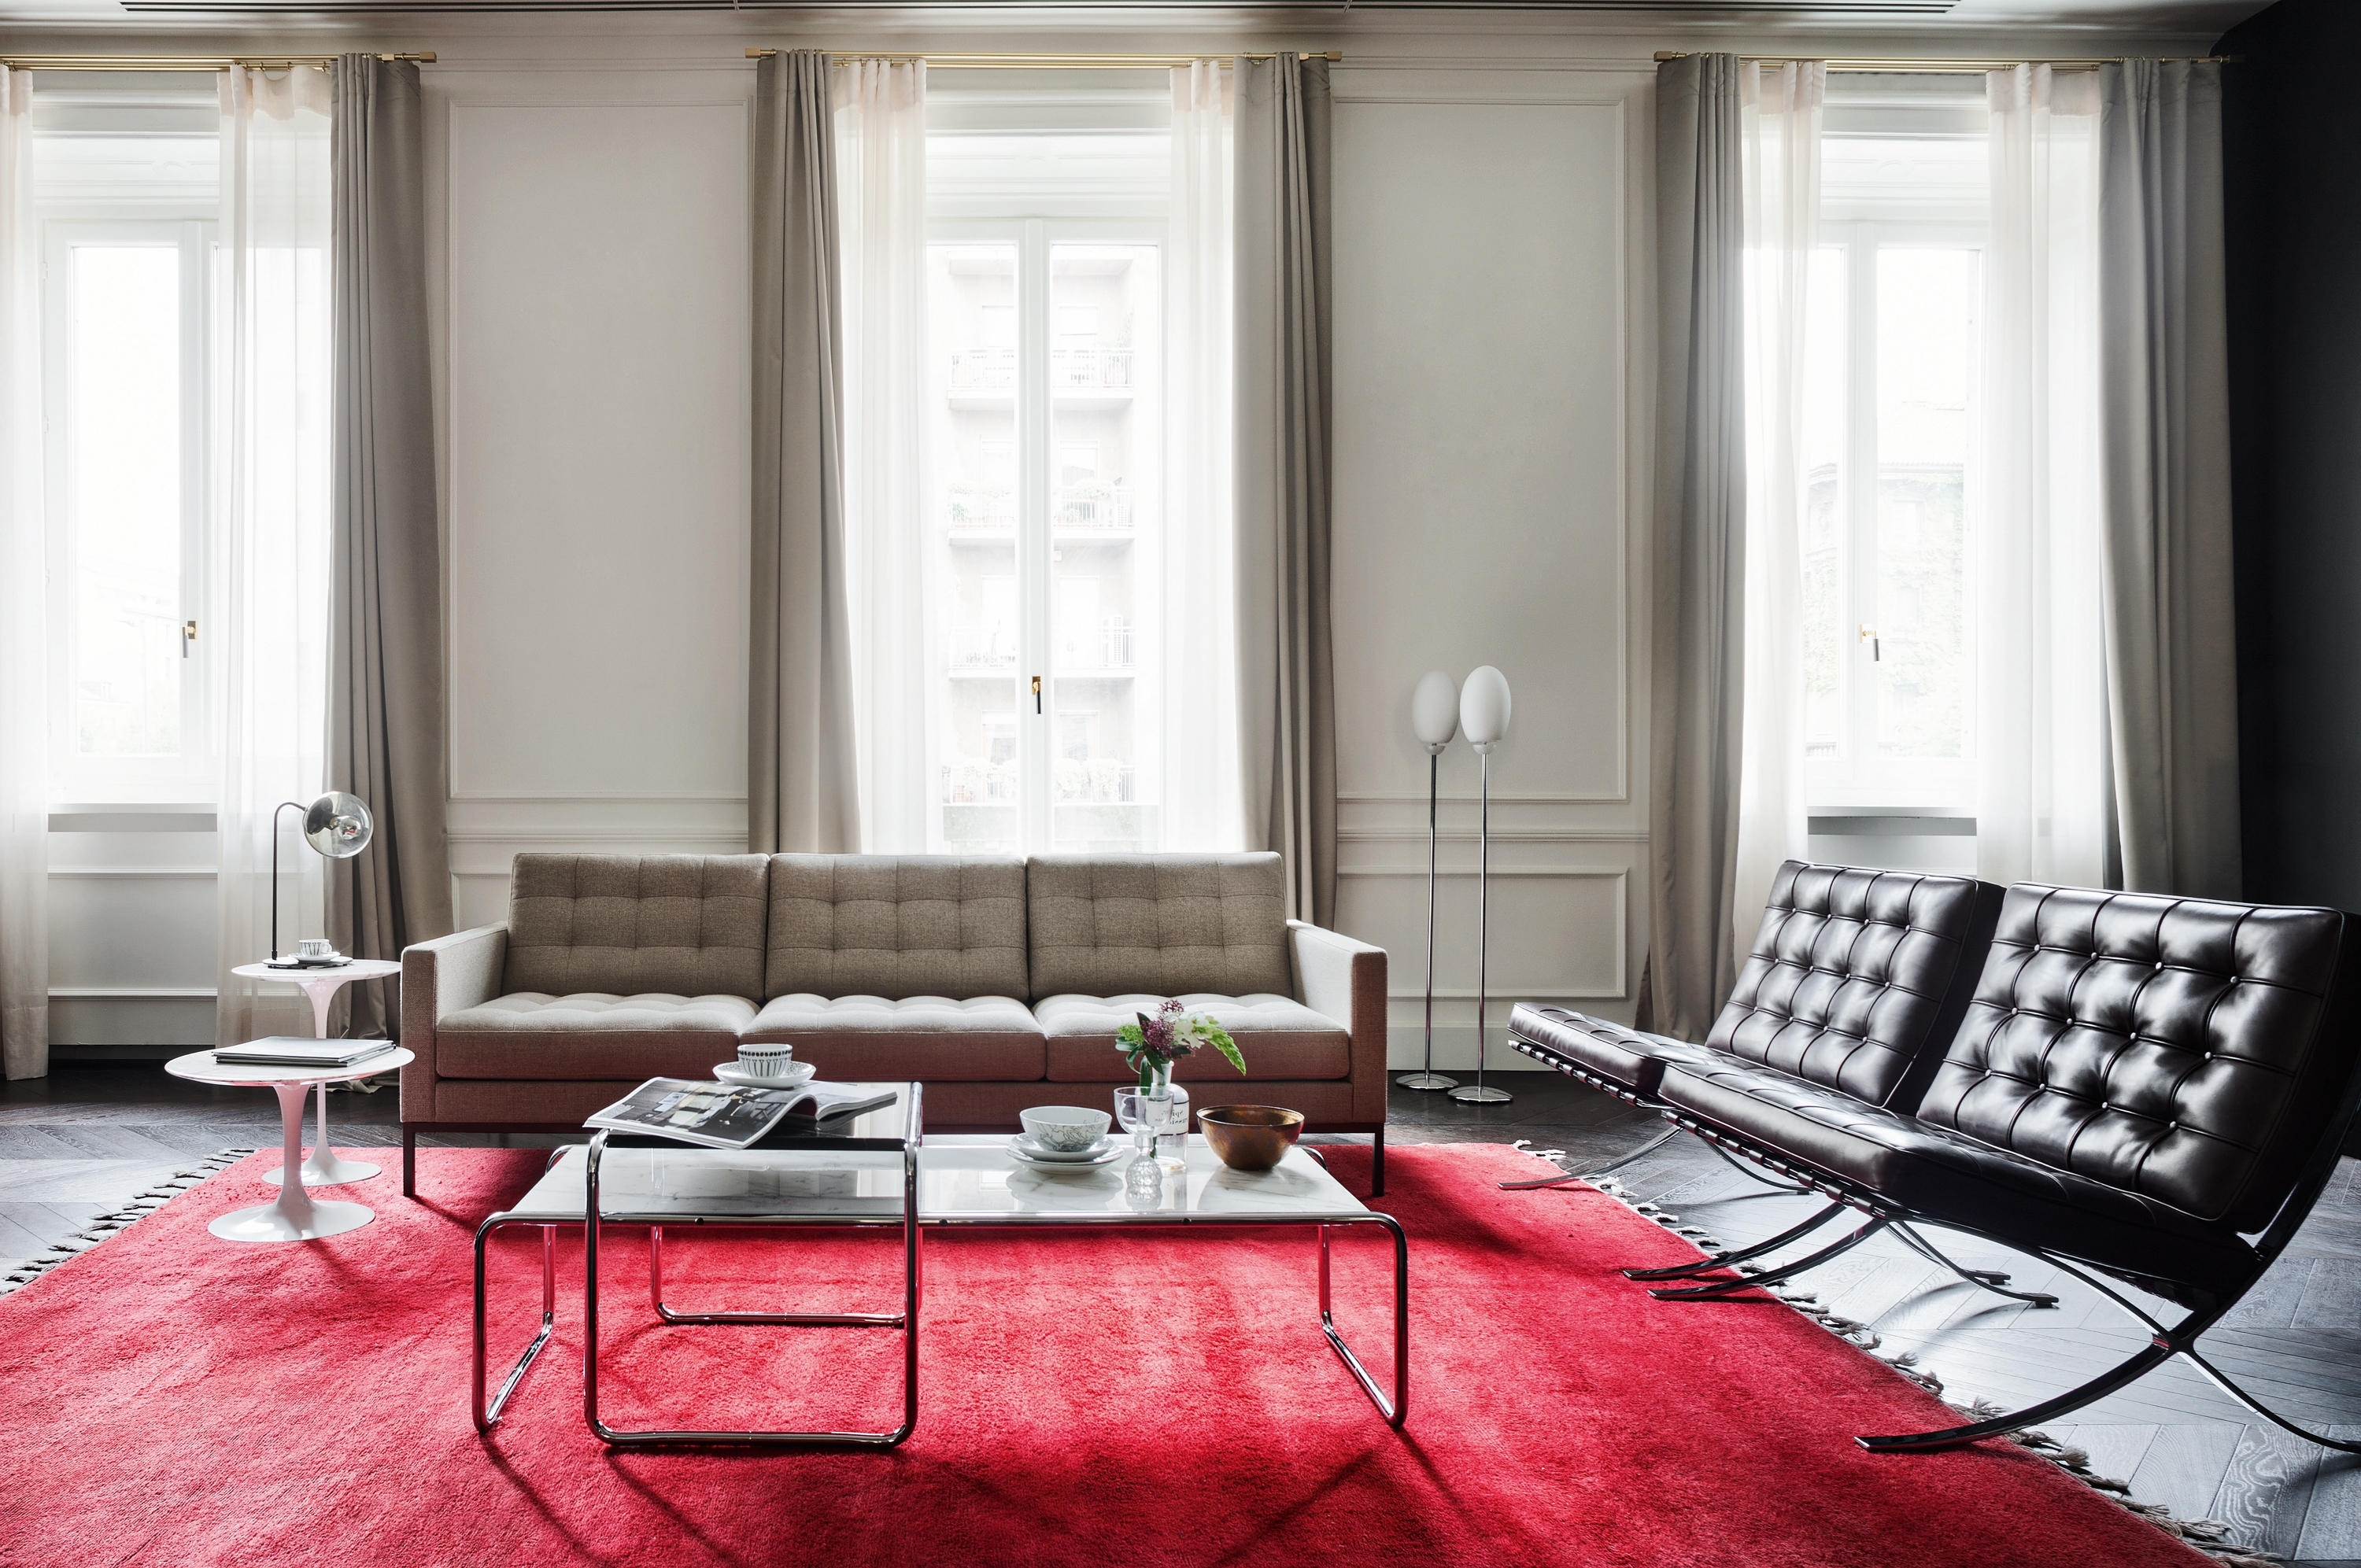 Florence Knoll Lounge 3 Seat Sofa – Lounge Sofas From Knoll Throughout 2019 Florence Knoll Living Room Sofas (Gallery 4 of 20)